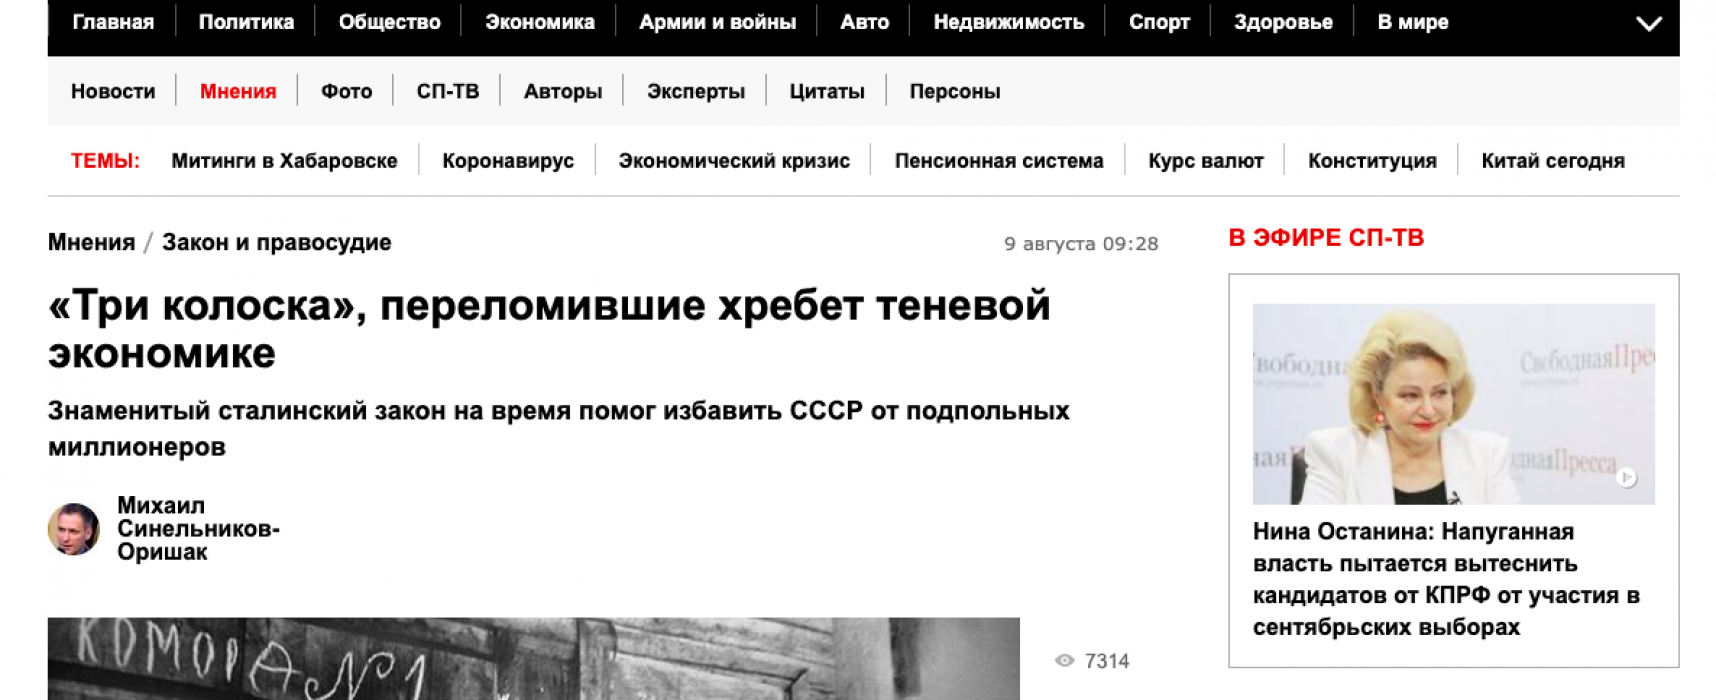 Fake: Soviet Law on 5 Spikelets Did Not Kill People, Protected Socialist Property from Theft